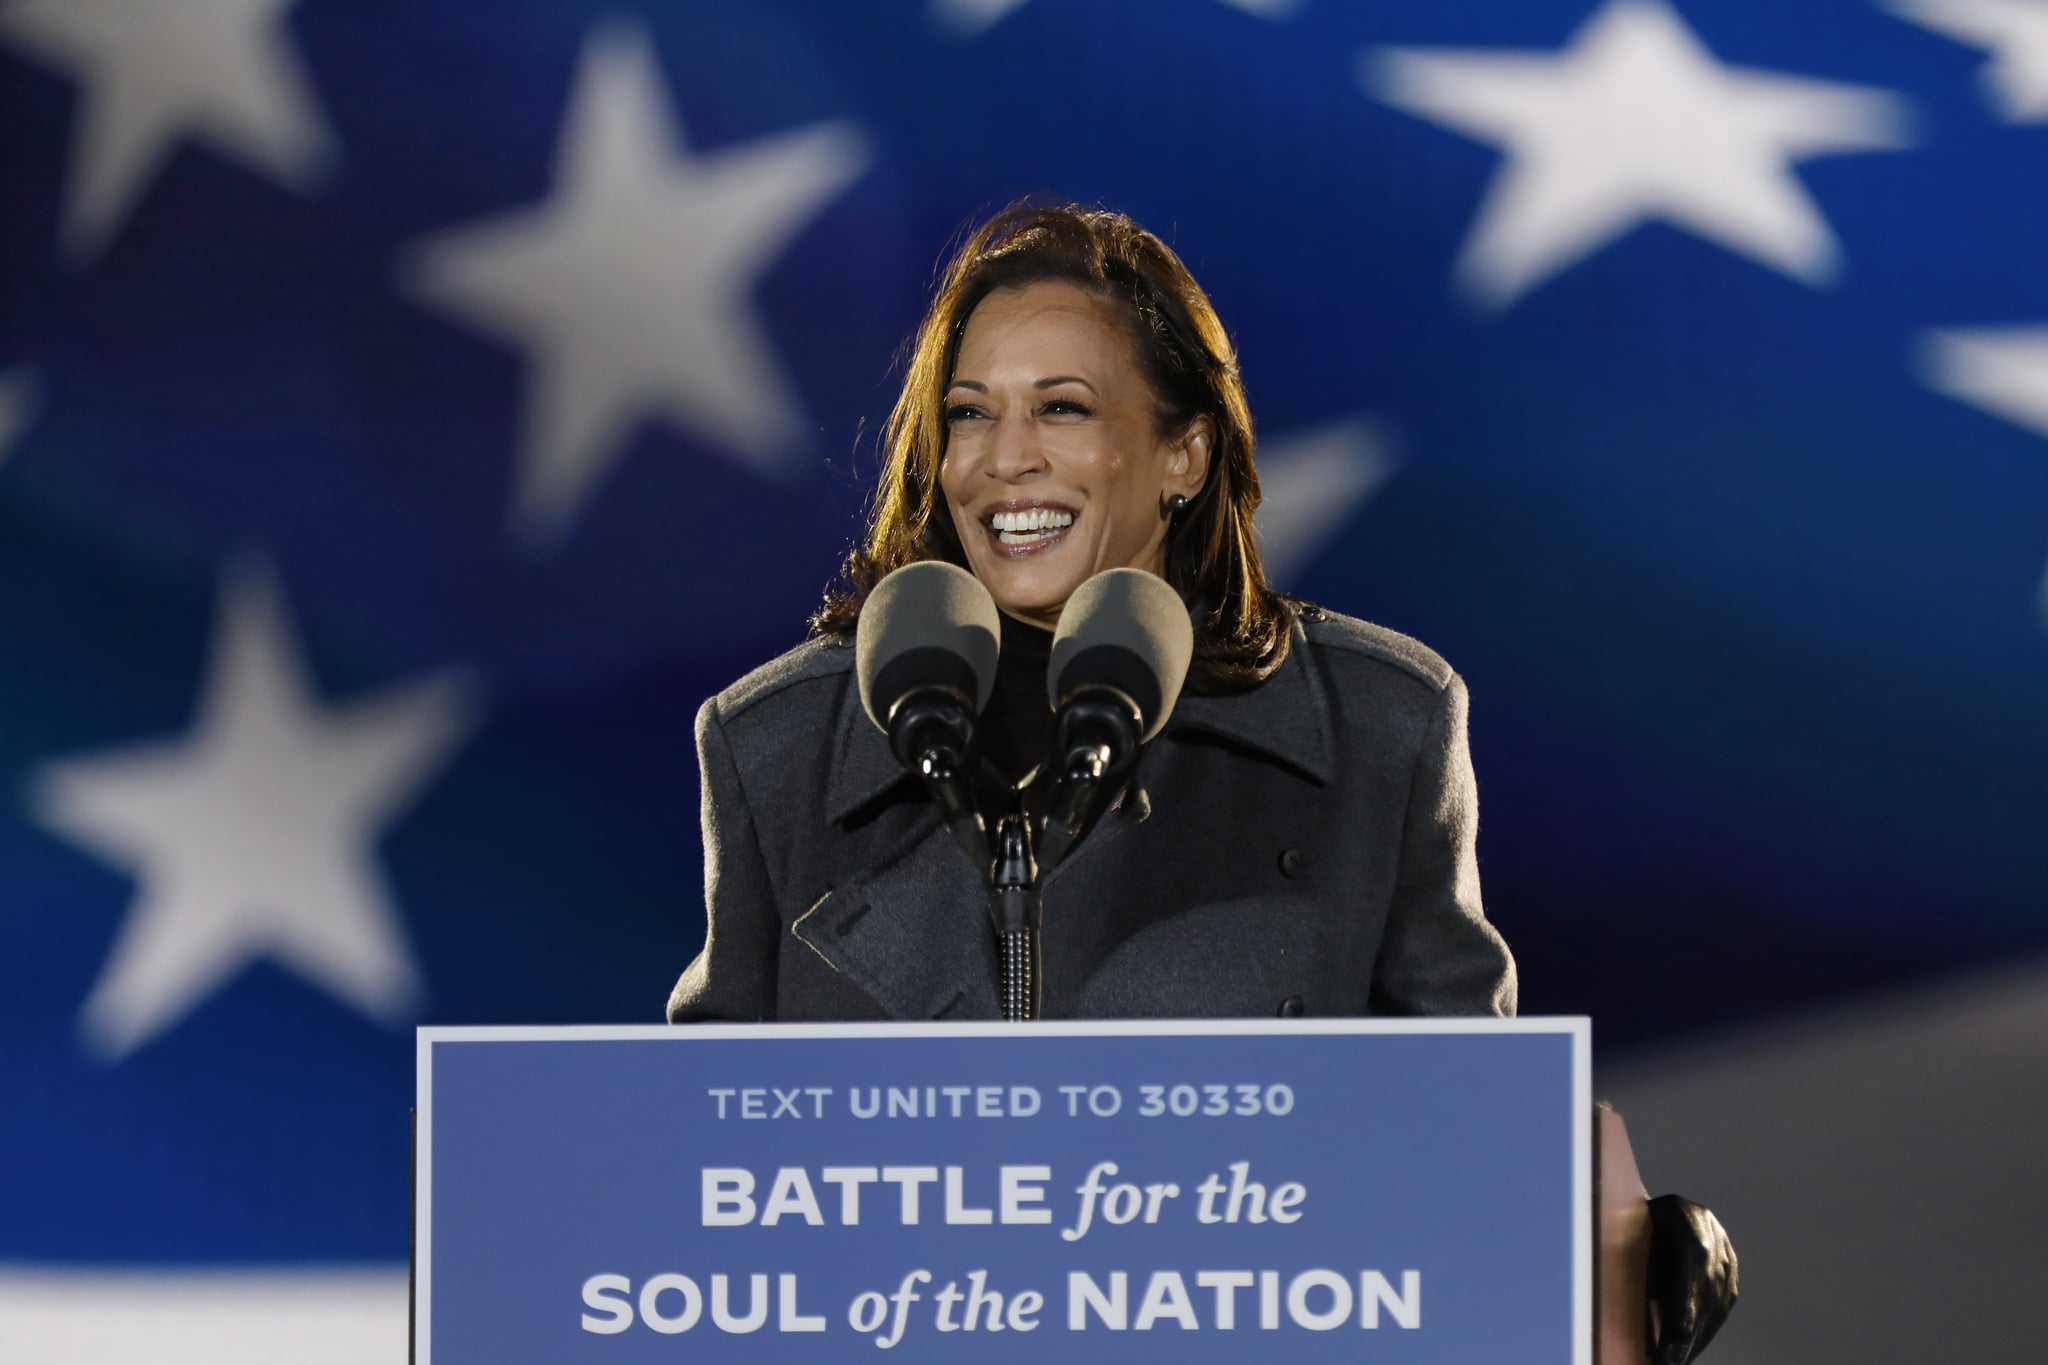 Philadelphia, Pennsylvania Nov. 2, 2020 Senator Kamala Harris addresses supporters at the drive- rally Monday night, Nov.2, 2020 at Citizens Bank Park parking lot in Philadelphia, Pennsylvania. (Carolyn Cole / Los Angeles Times via Getty Images)